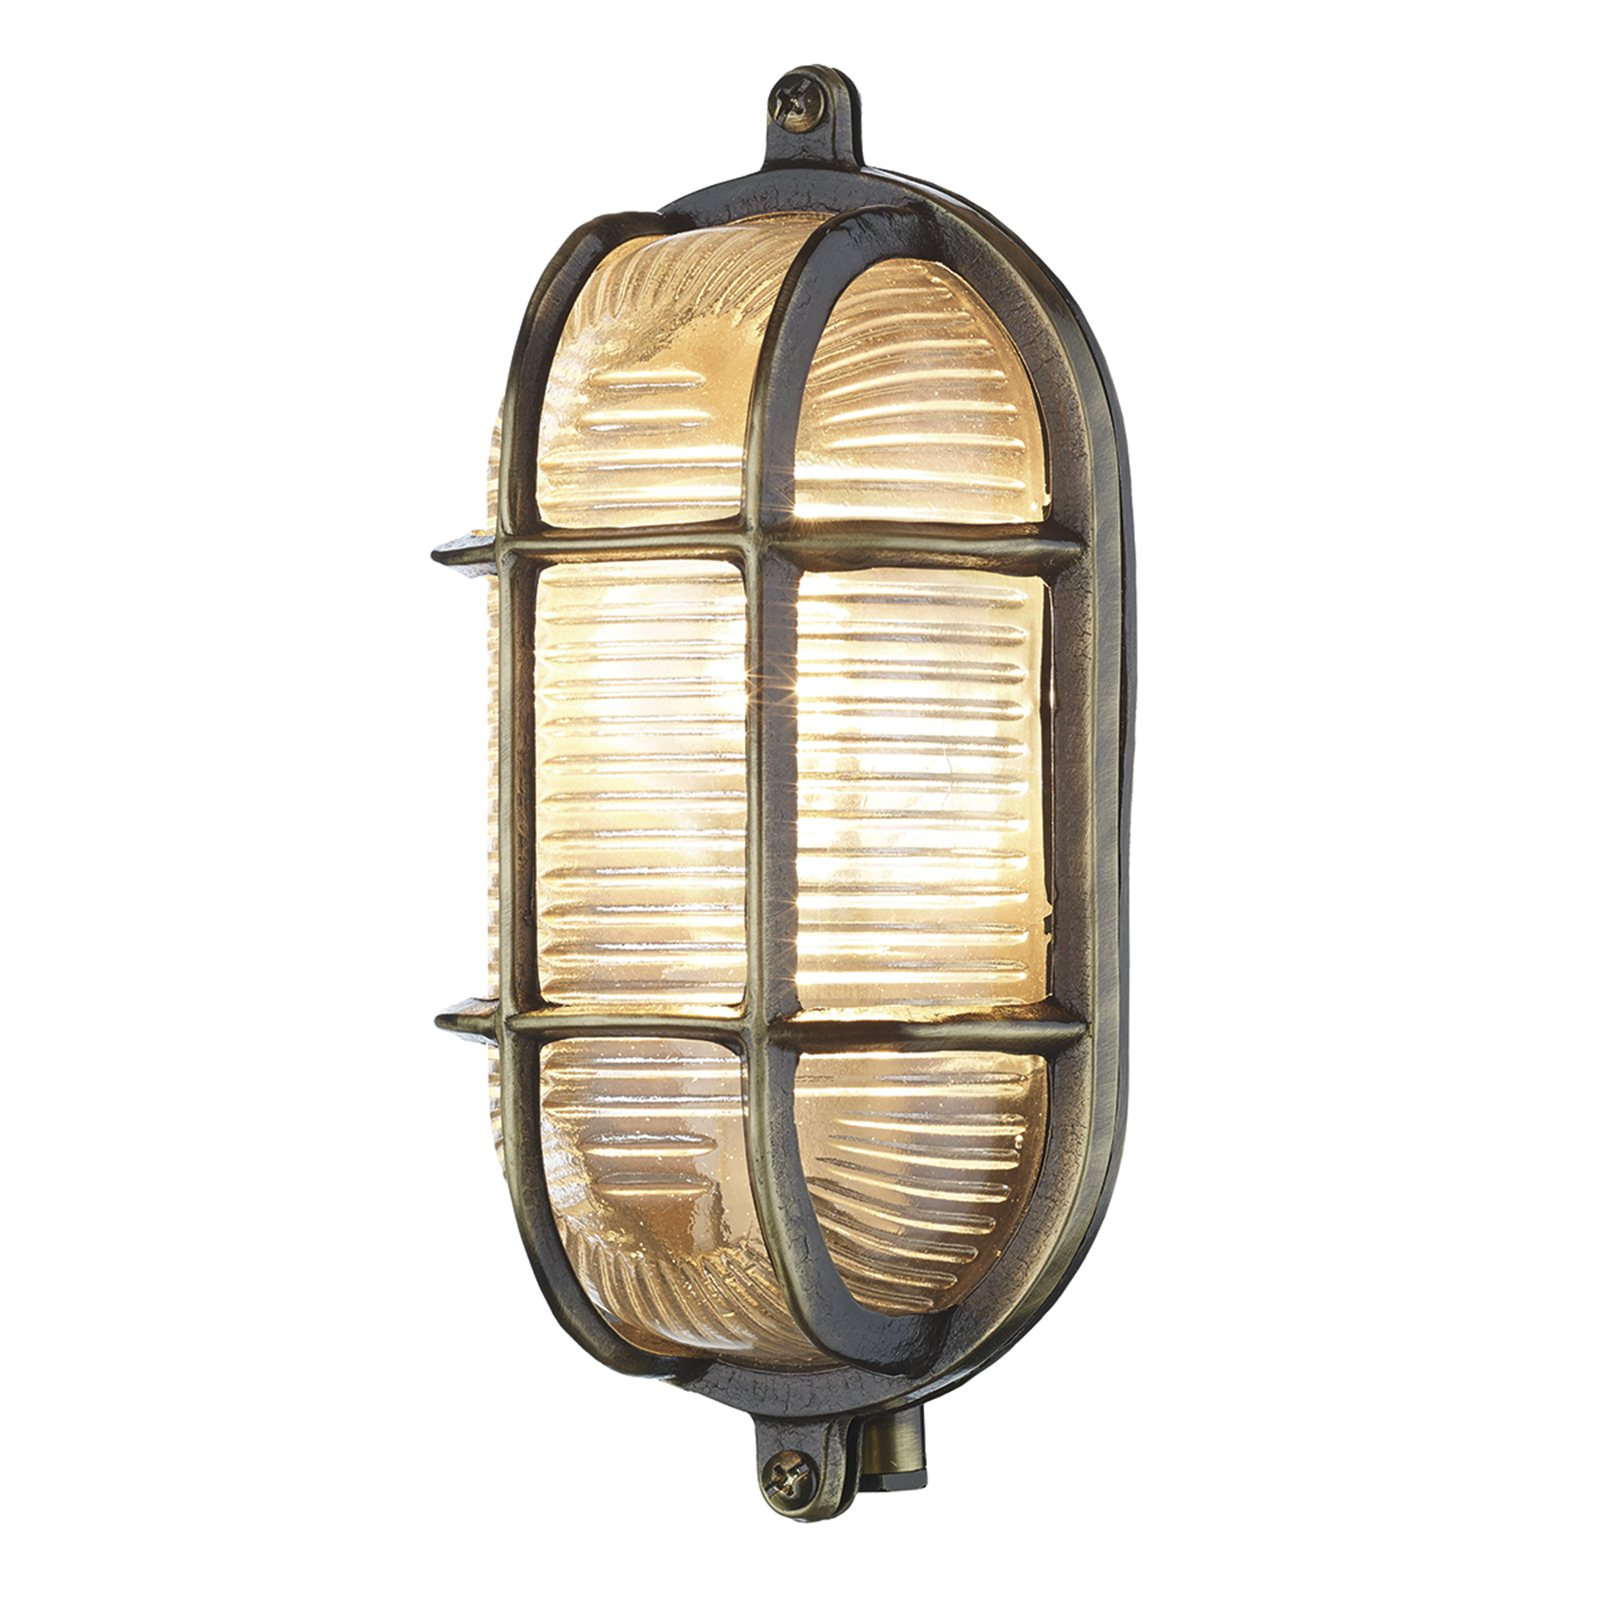 Marina Wall Lights Bhs : HICKS and HICKS Marina Wall Lamp Antique Brass - Hicks & Hicks